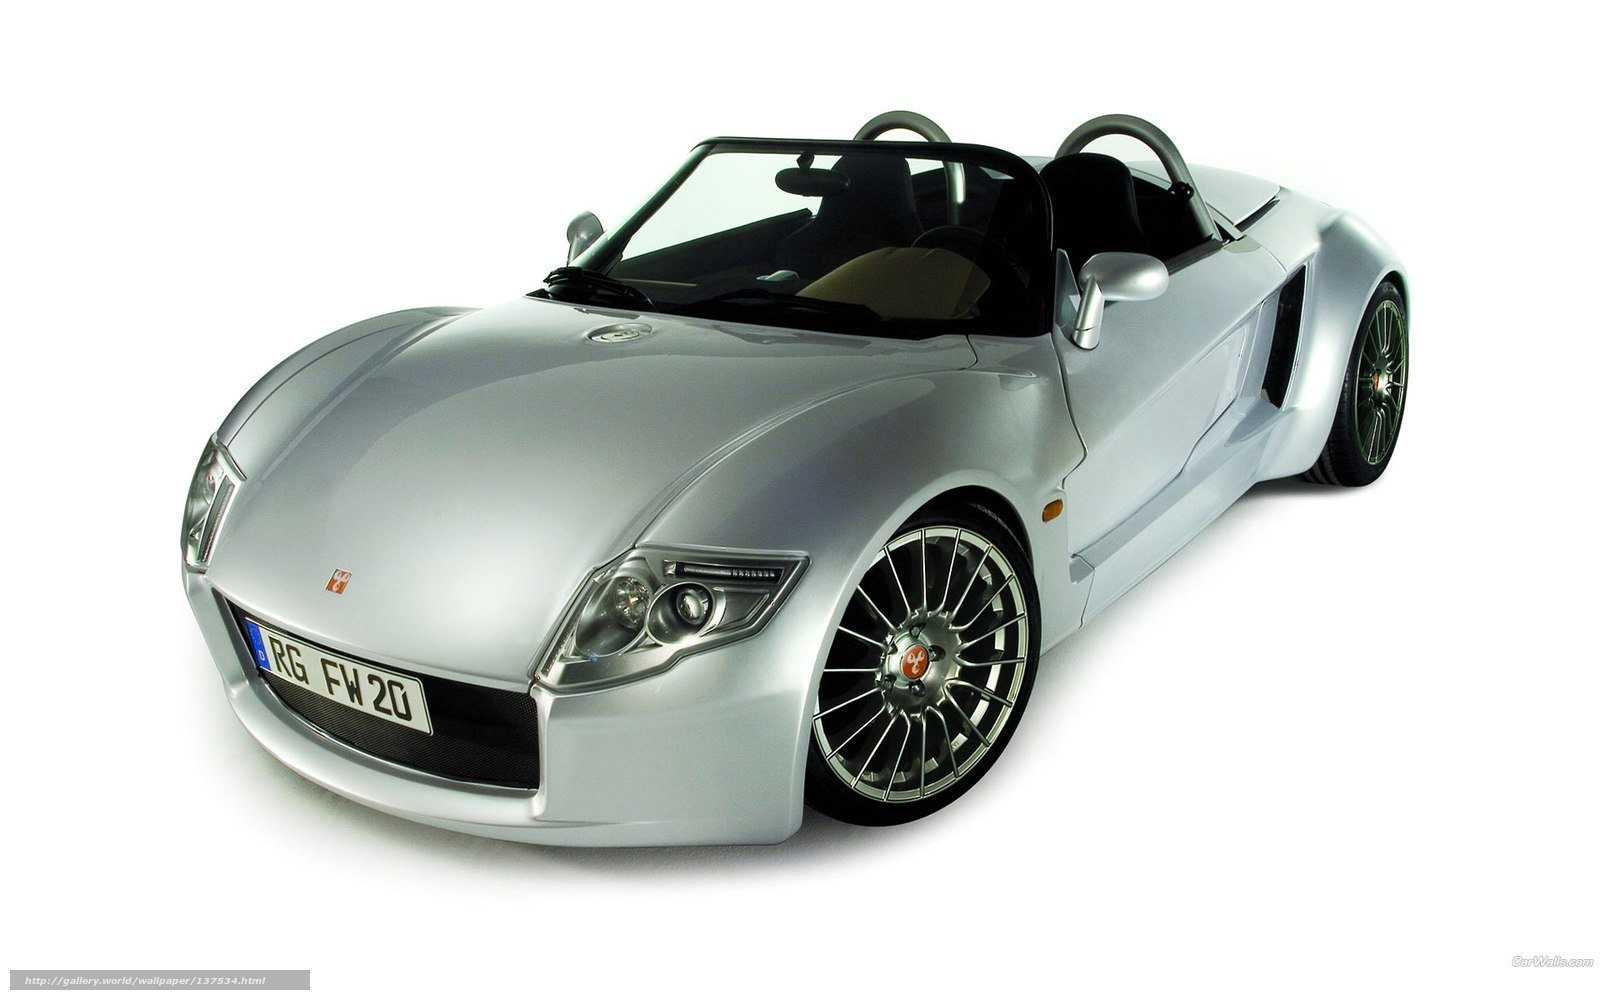 New Download Wallpaper Yes Roadster Car Machinery Free On This Month